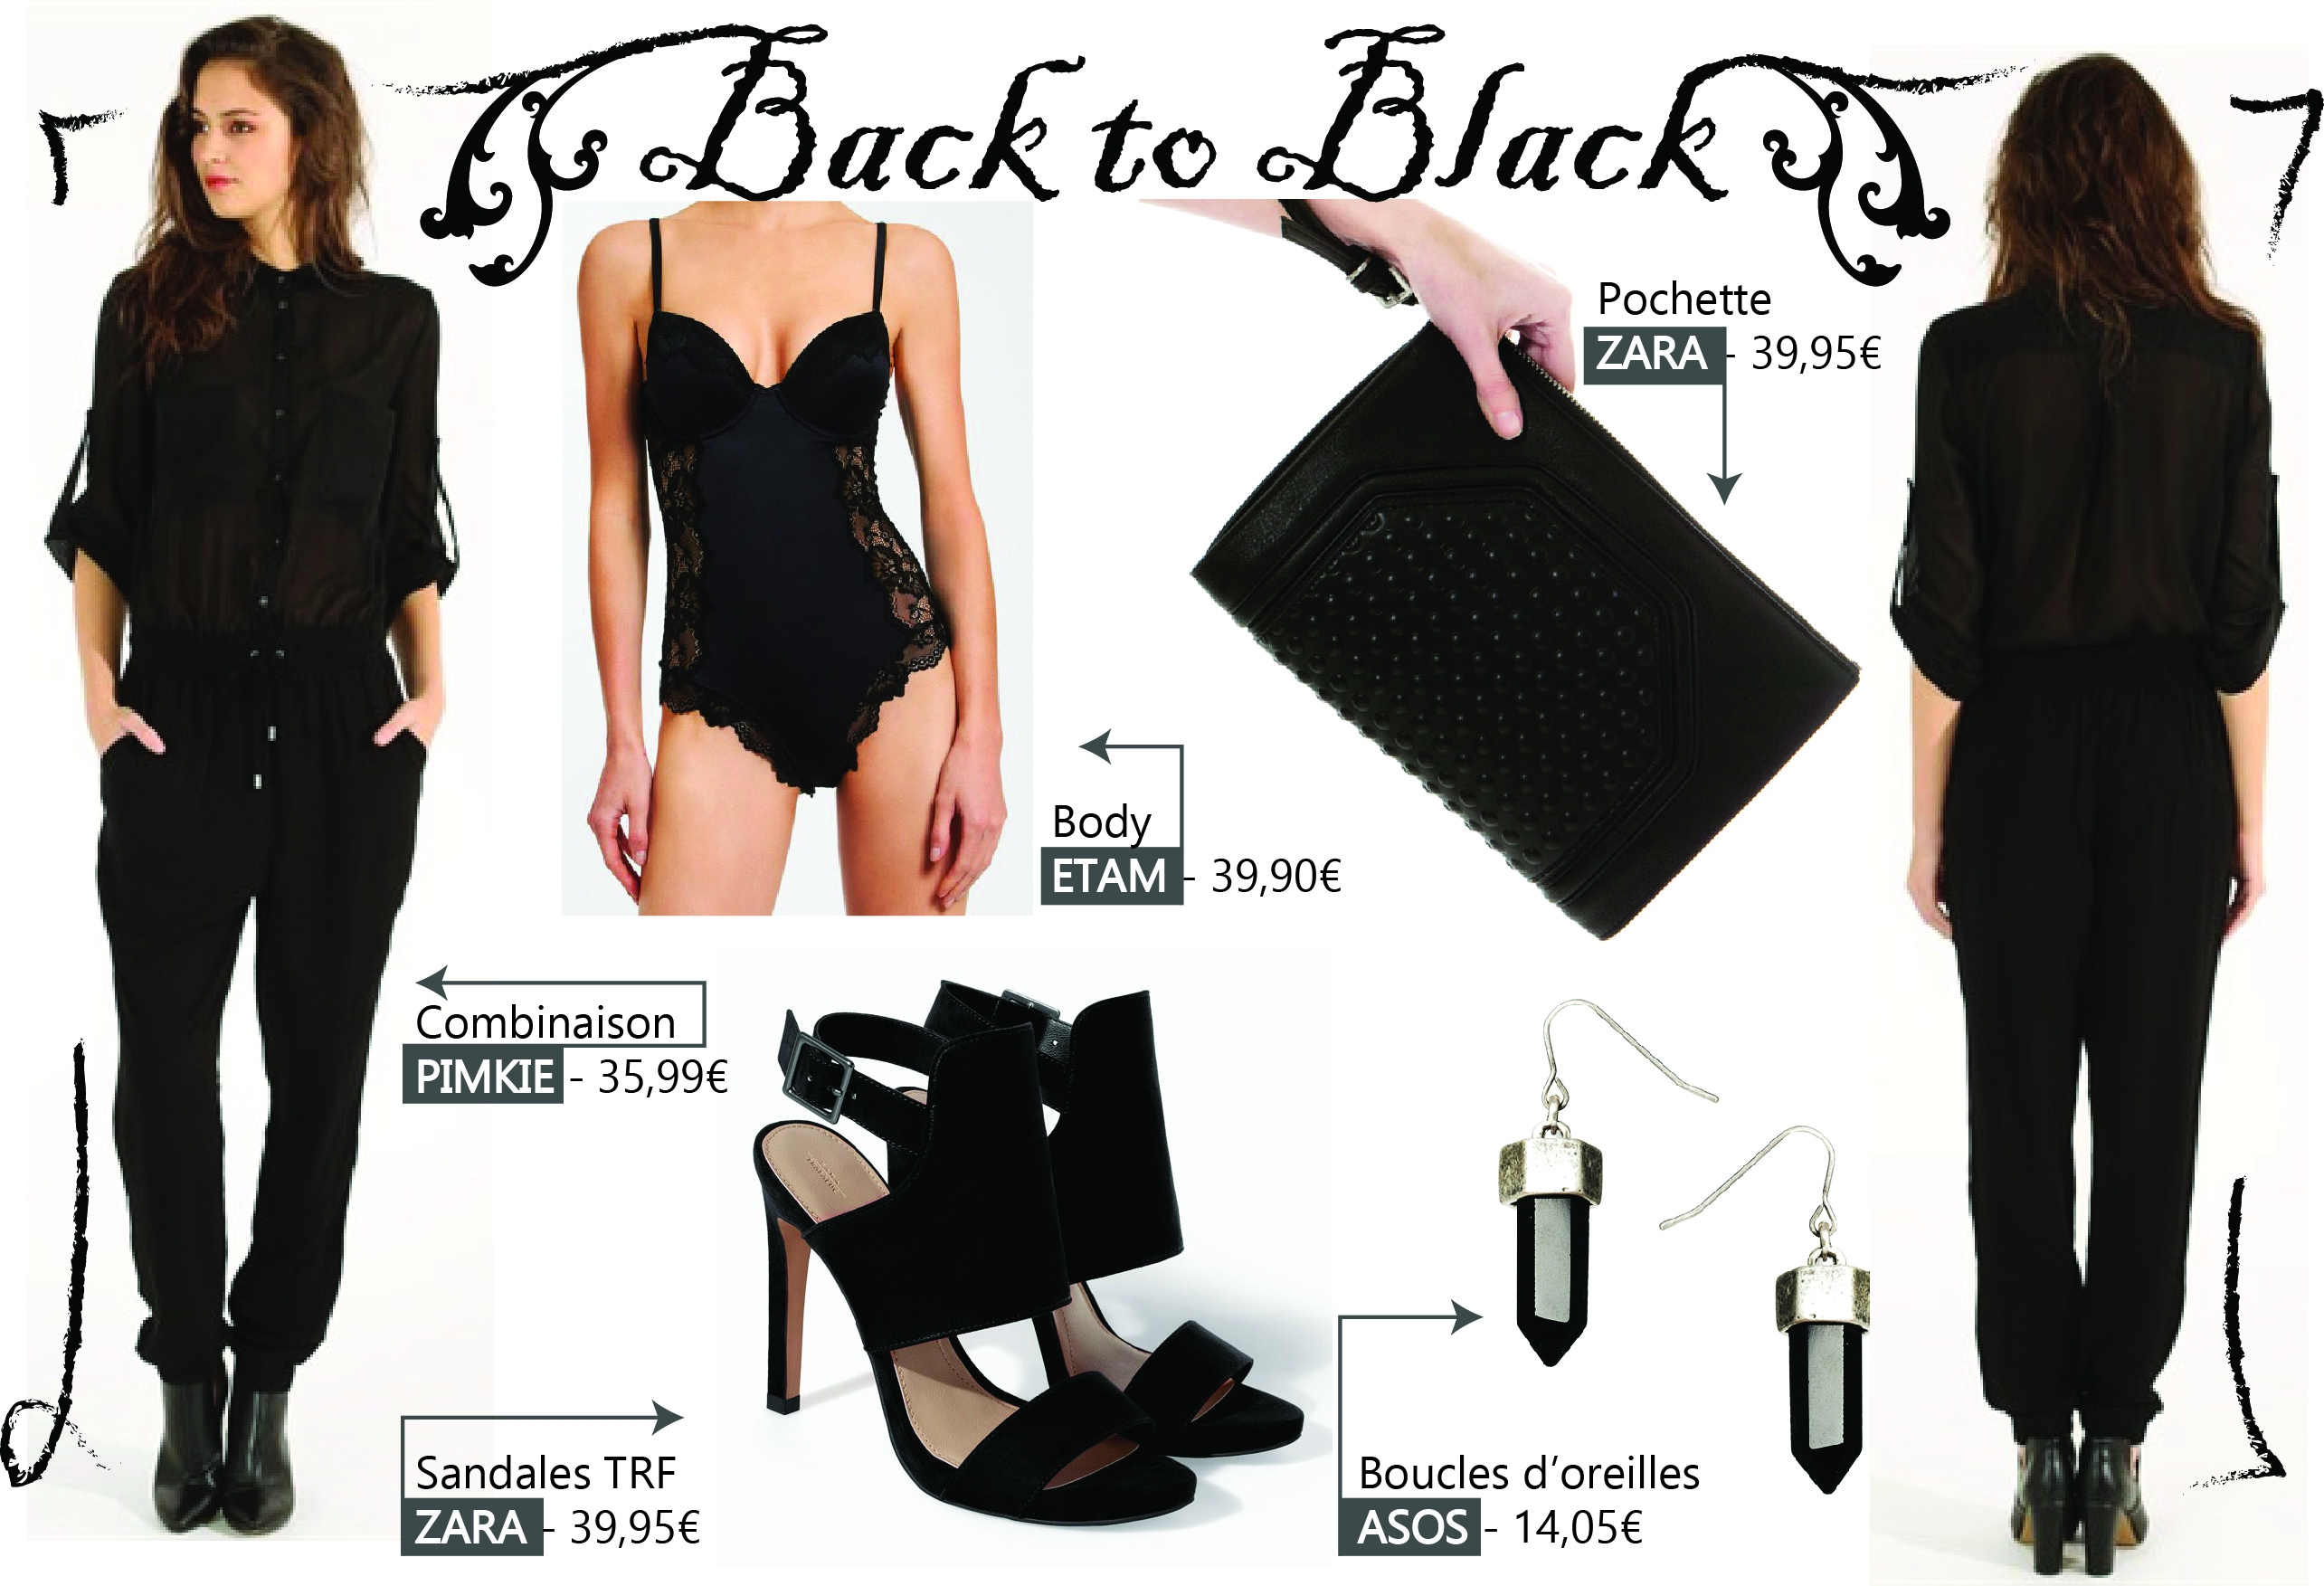 TOTAL LOOK BACK TO BLACK